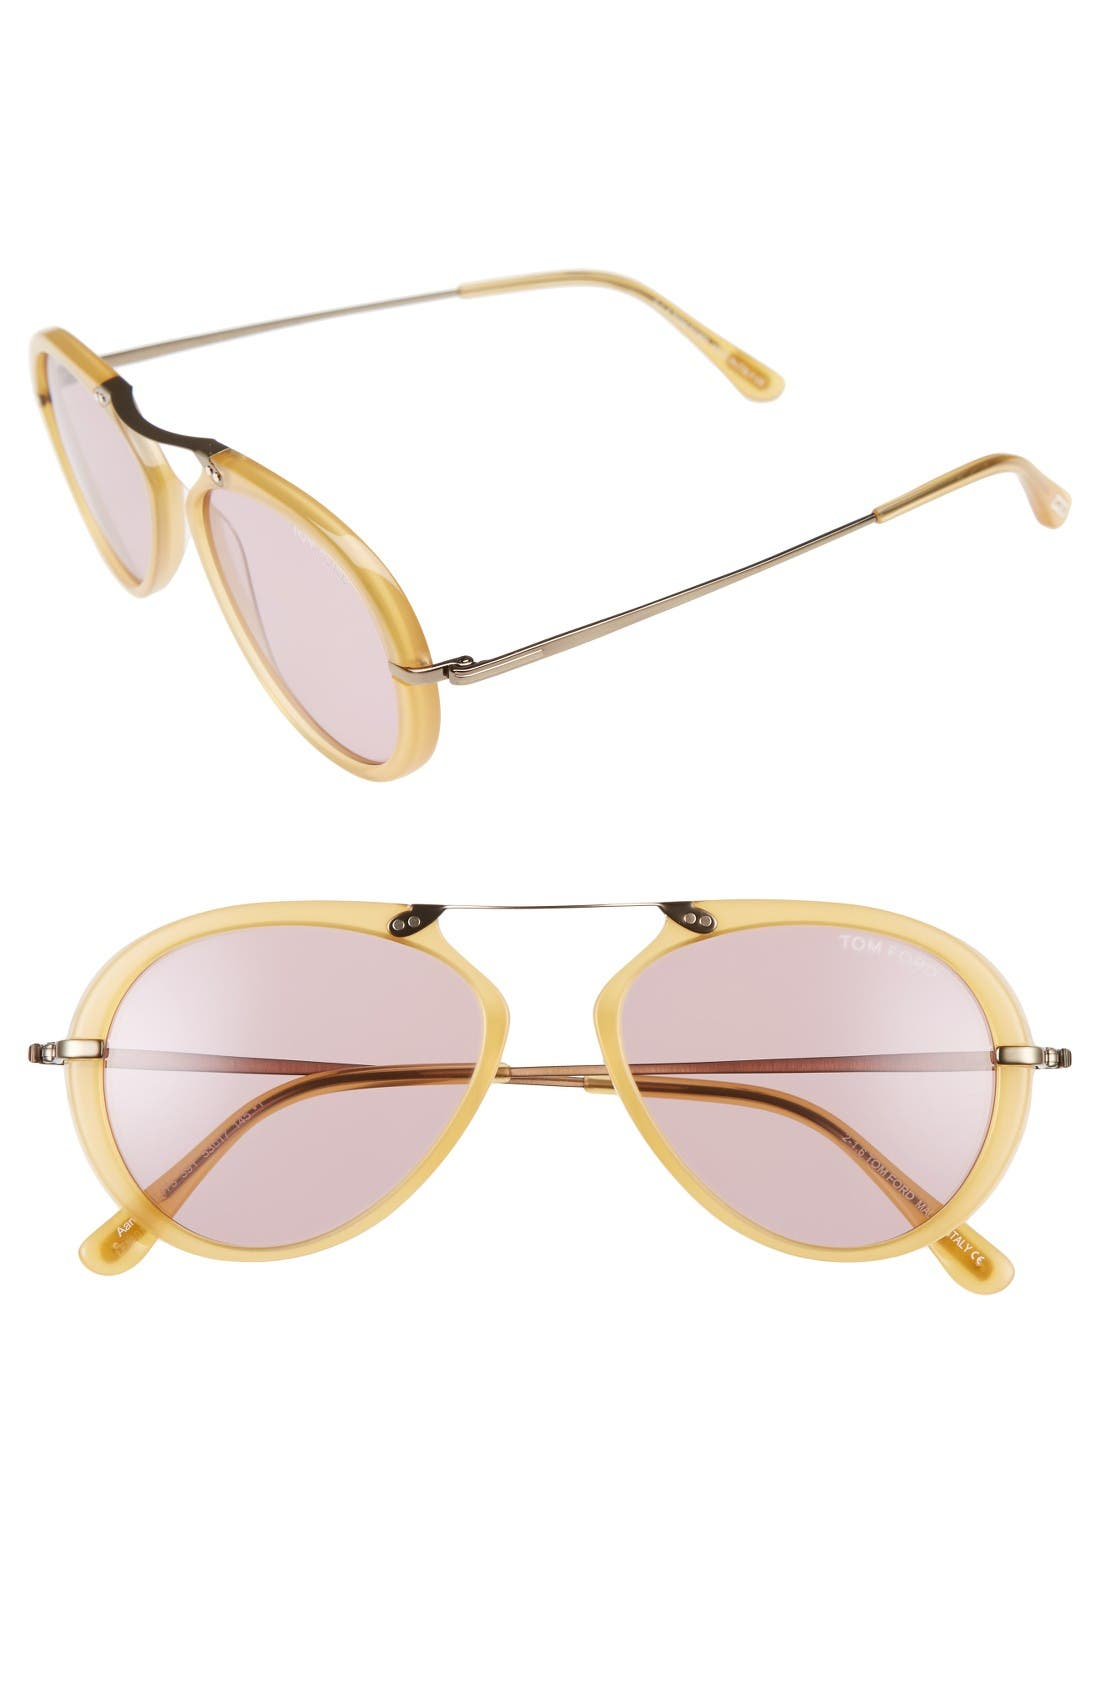 Alternate Image 1 Selected - Tom Ford 'Aaron' 53mm Sunglasses